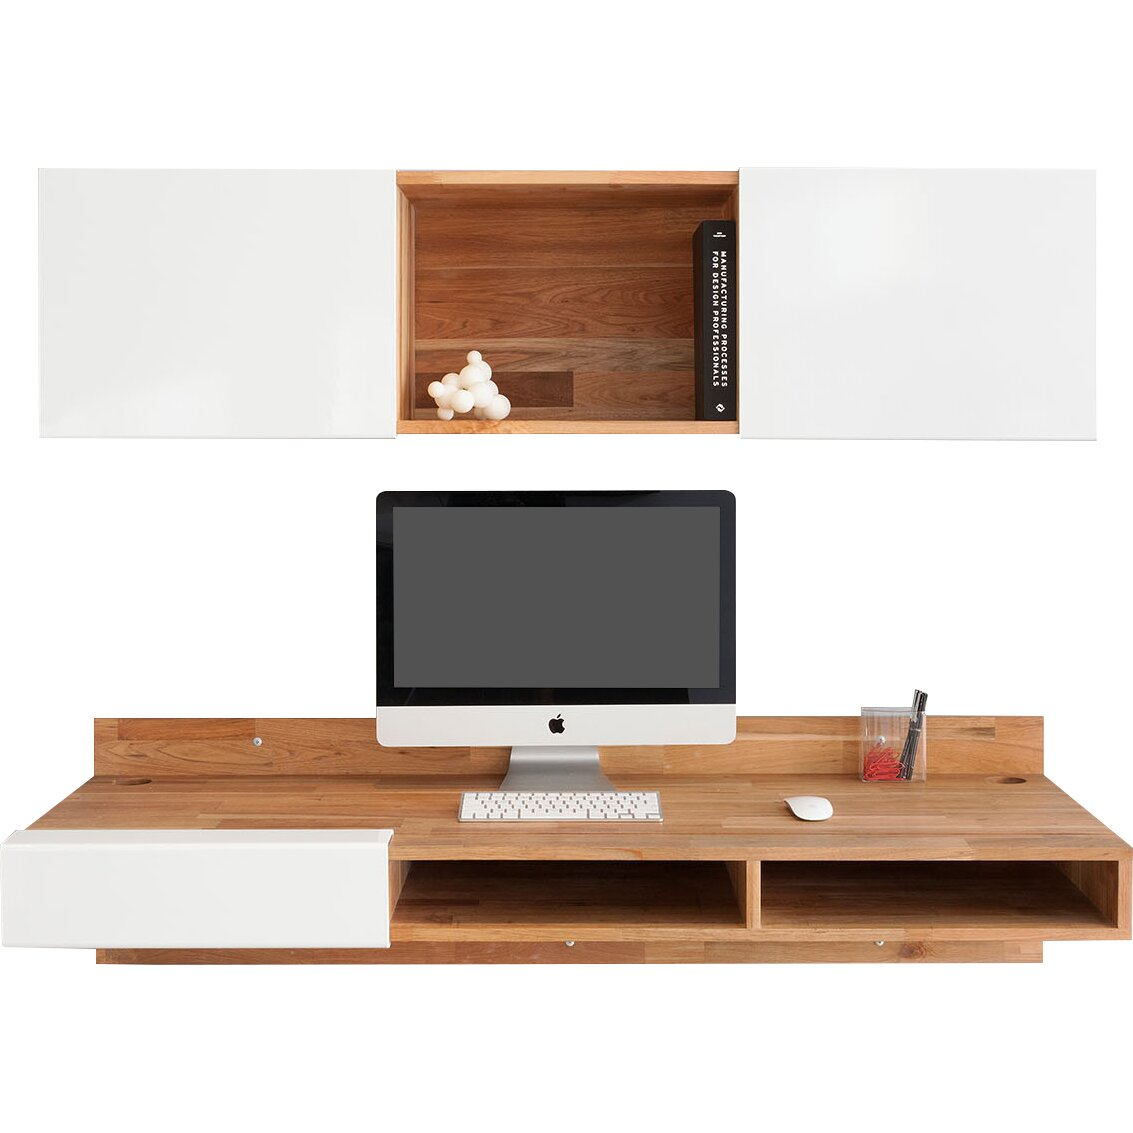 Mash Studios Laxseries Wall Mounted Desk Reviews Wayfair